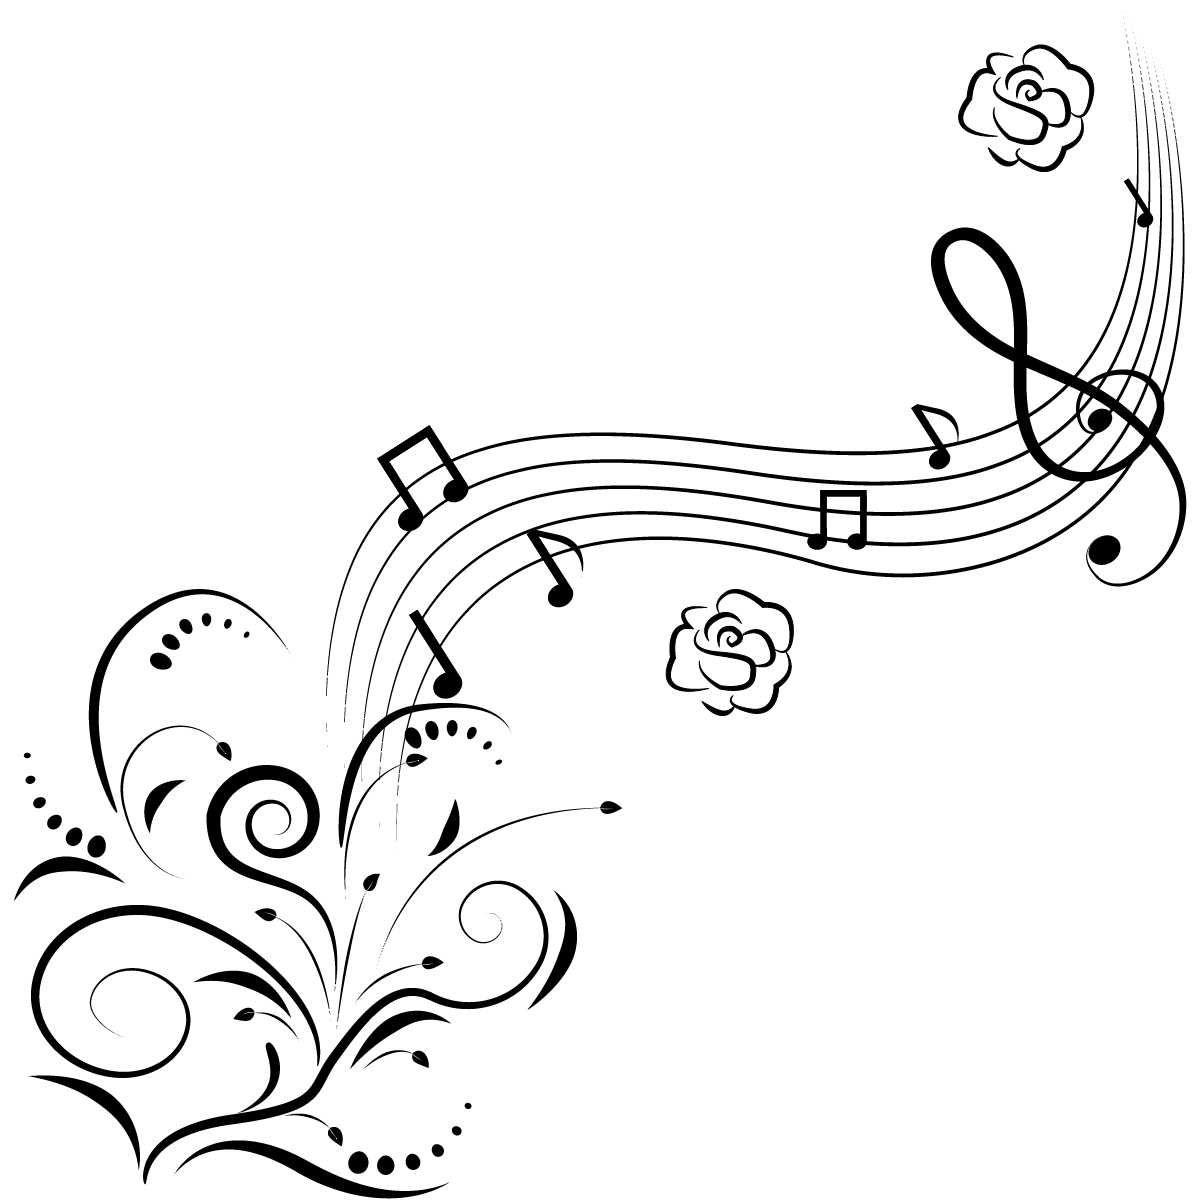 music-notes-flowers-wall-art